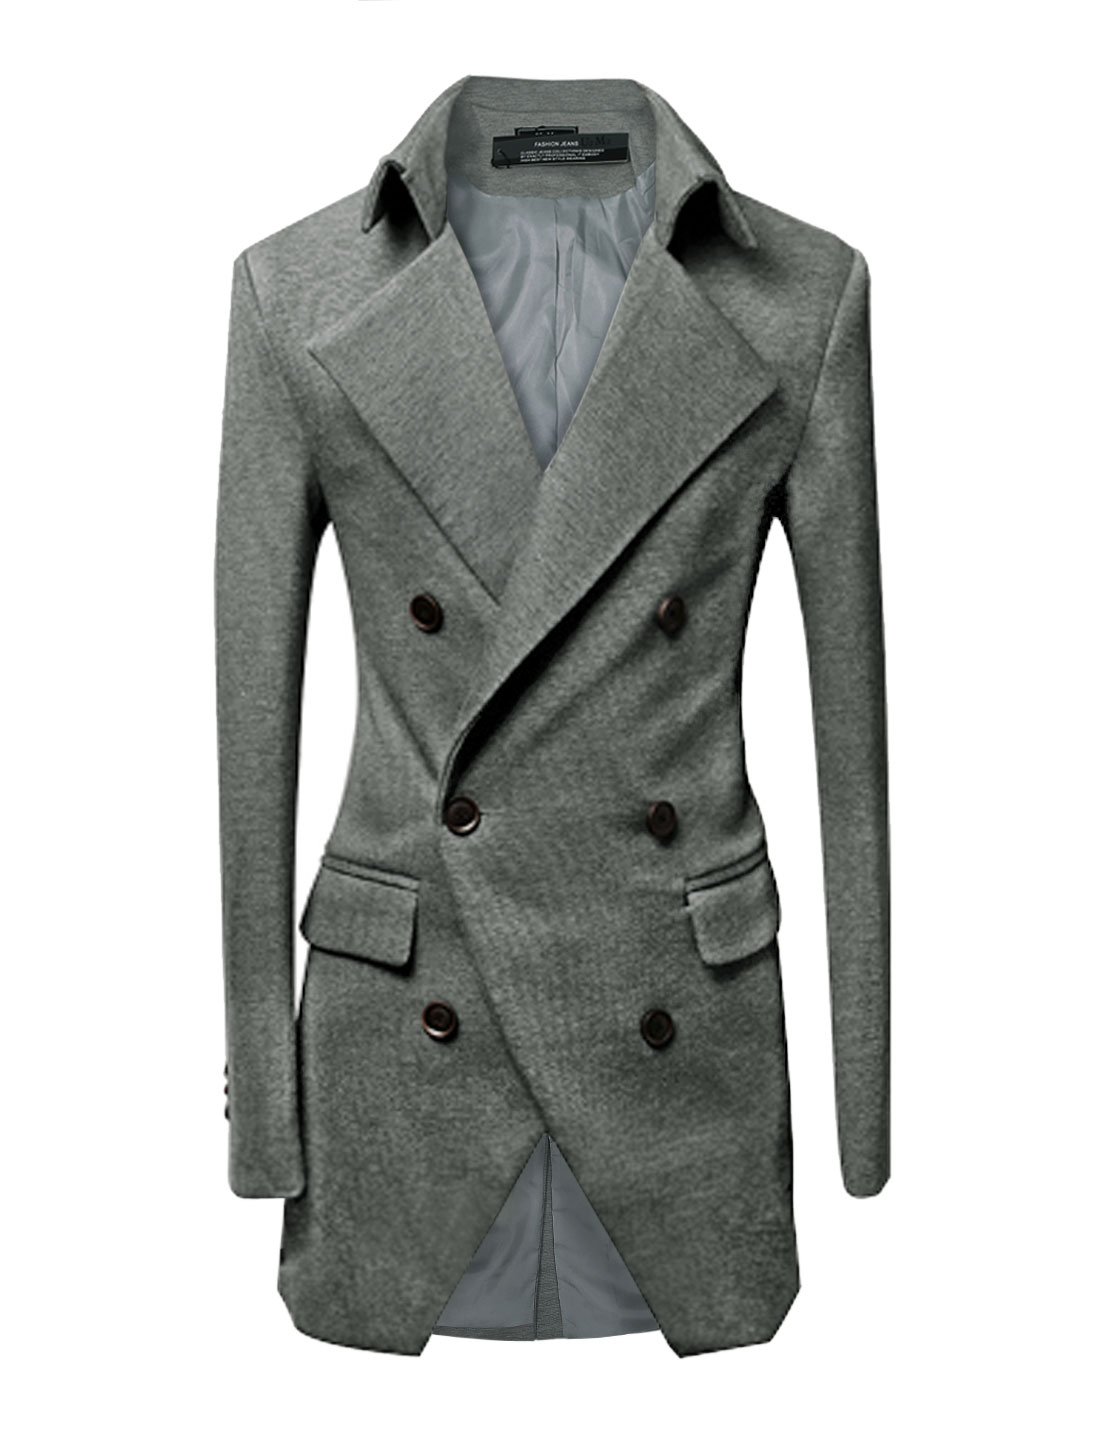 Men Padded Shoulders Long Sleeve Vertical Pockets Trench Jacket Light Gray M